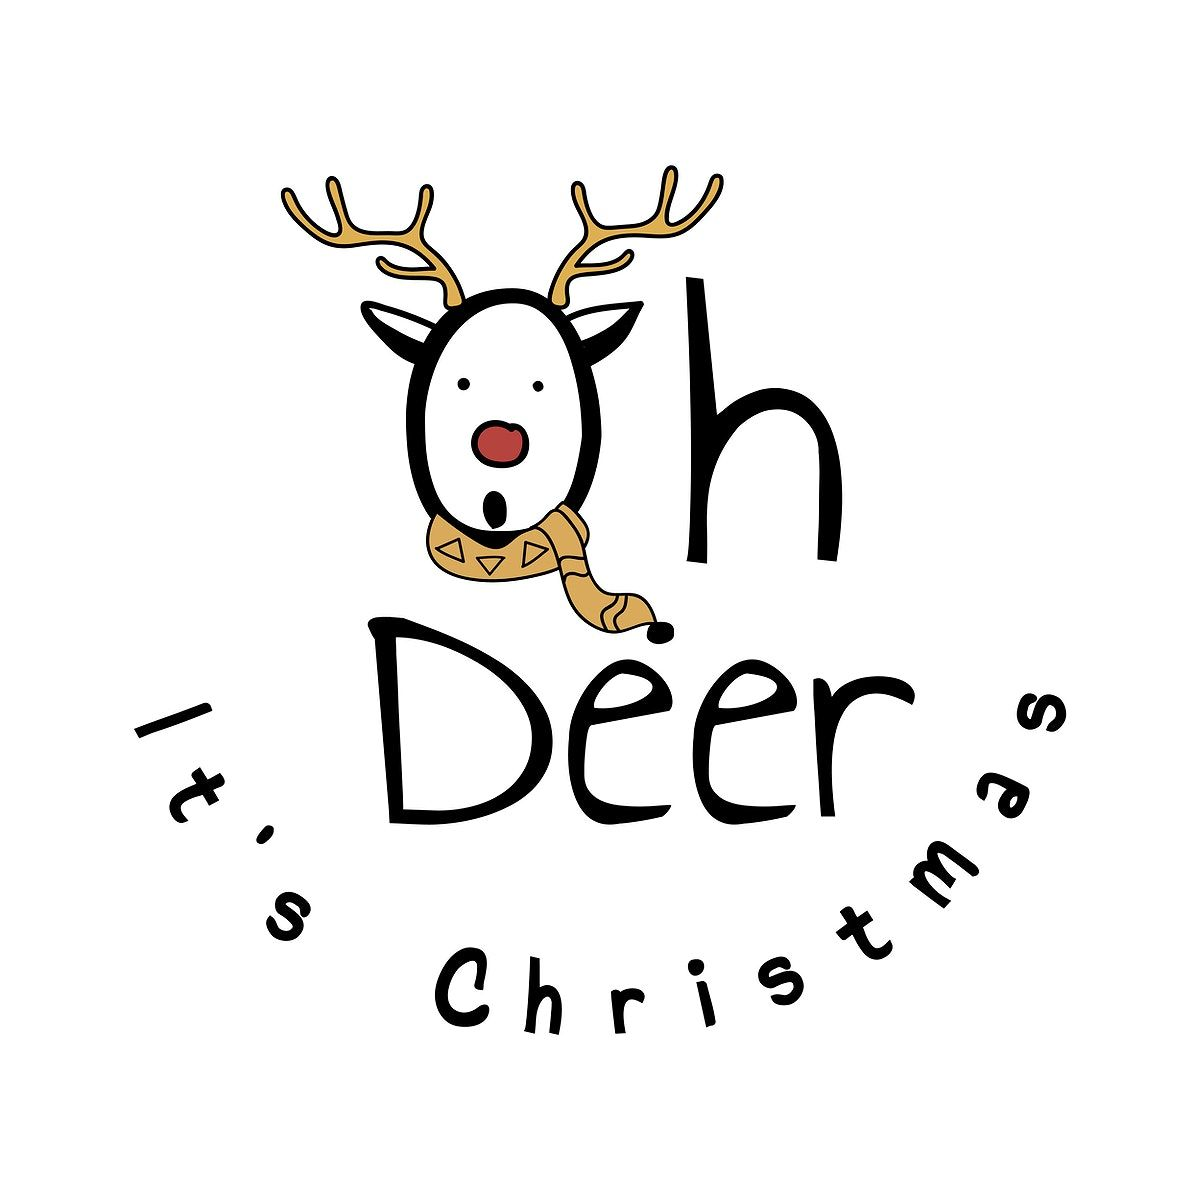 Oh Deer It S Christmas 2020 Hand drawn Oh deer, it's Christmas | premium image by rawpixel.